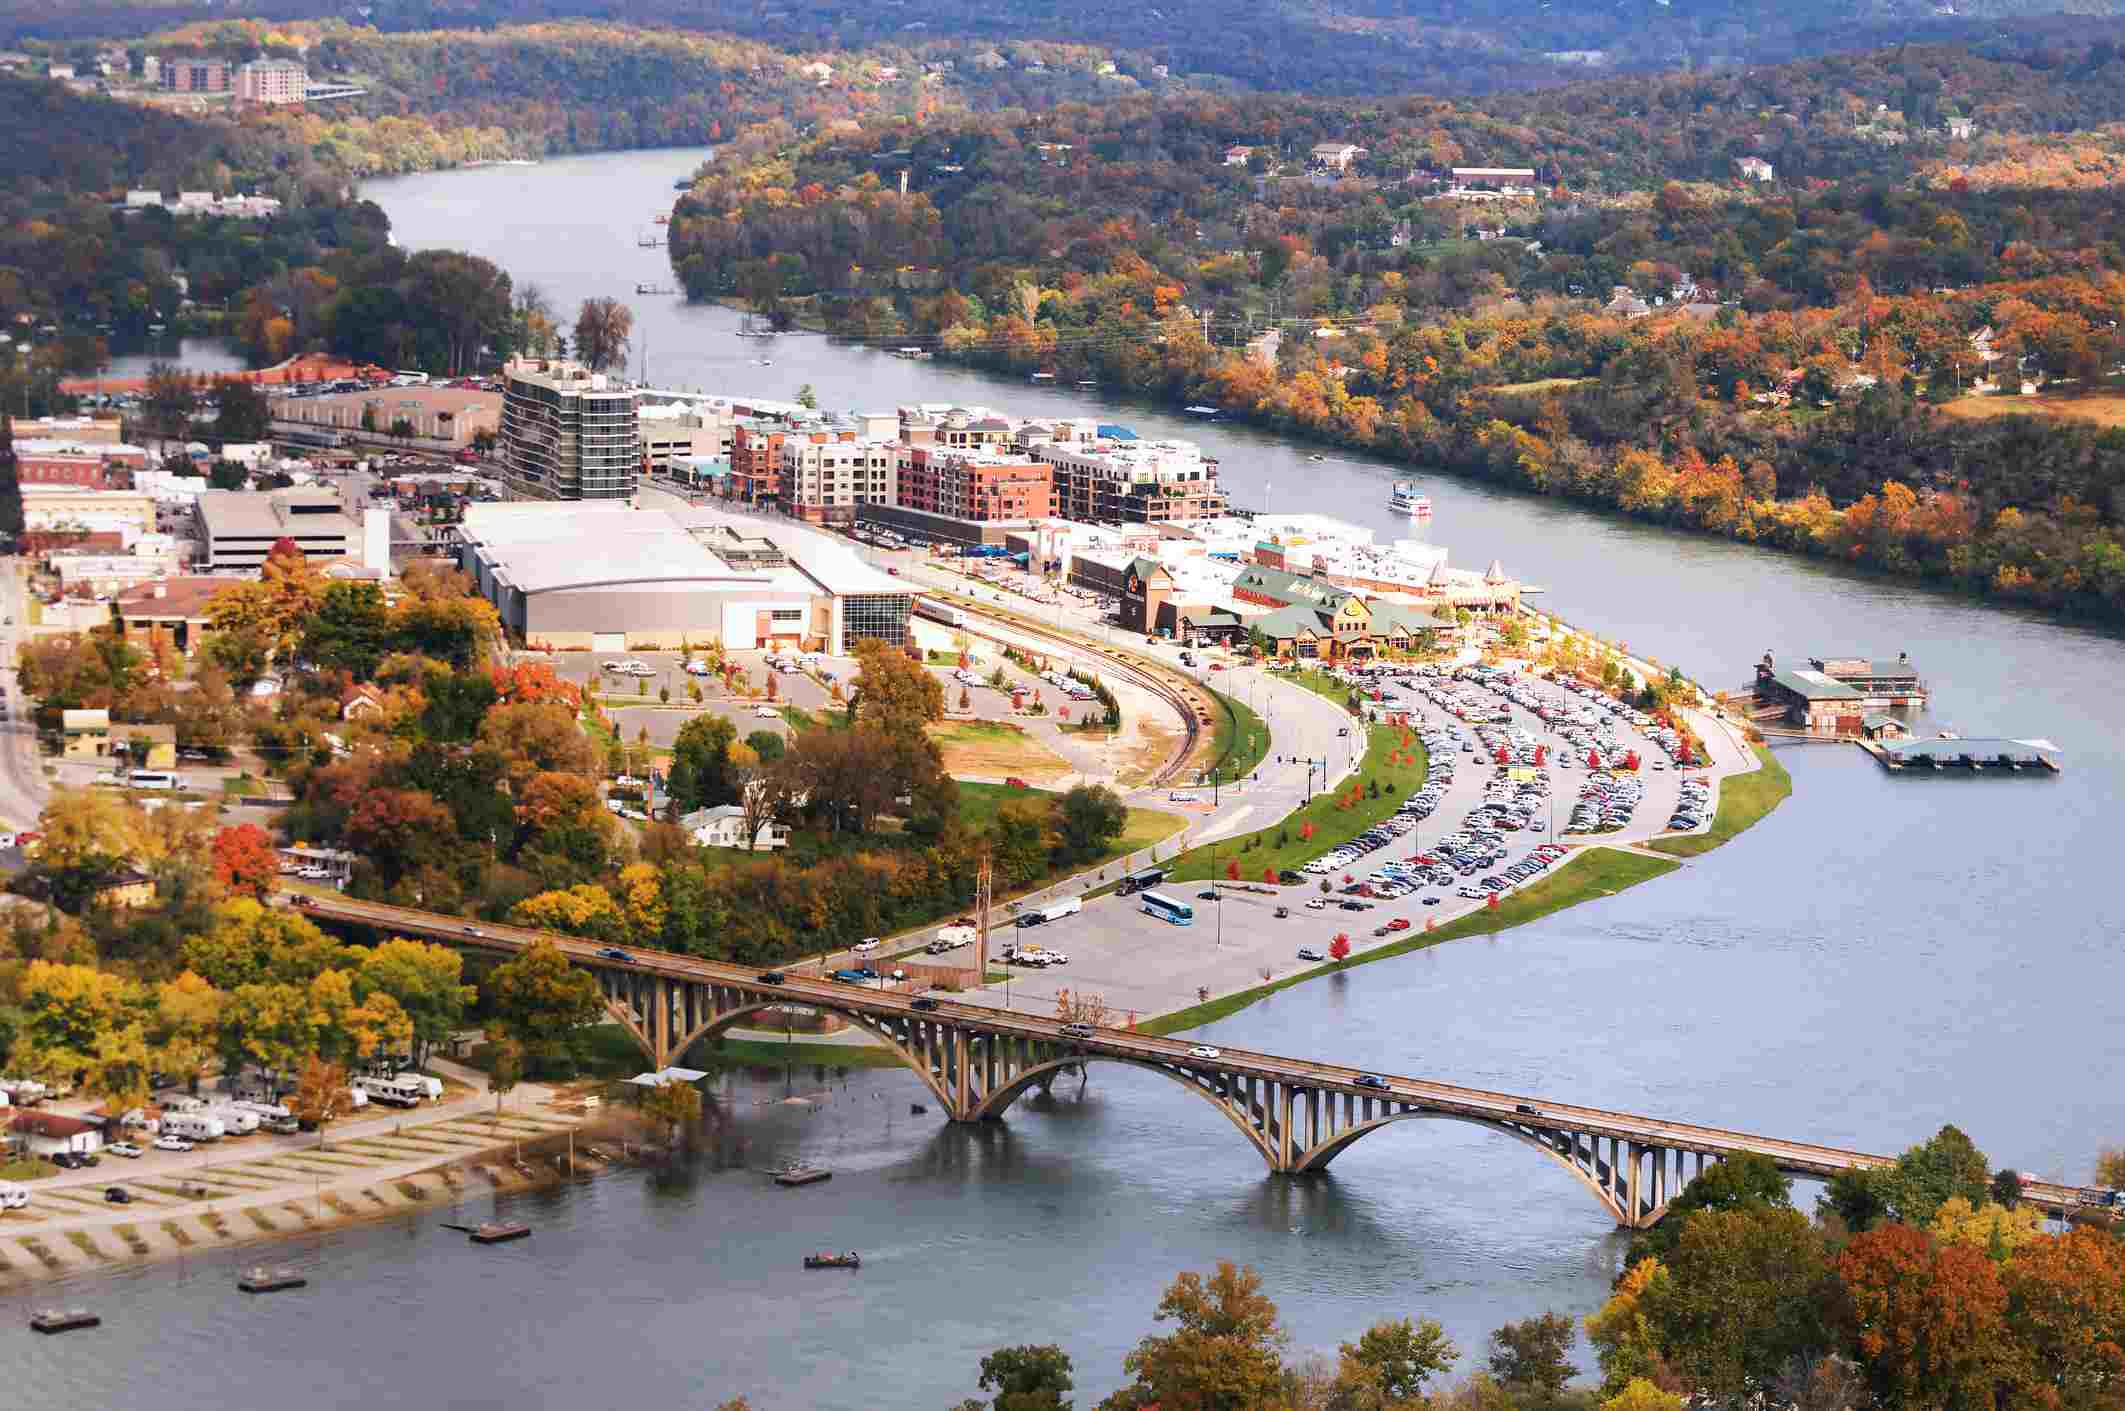 Branson Missouri's downtown on the waterfront